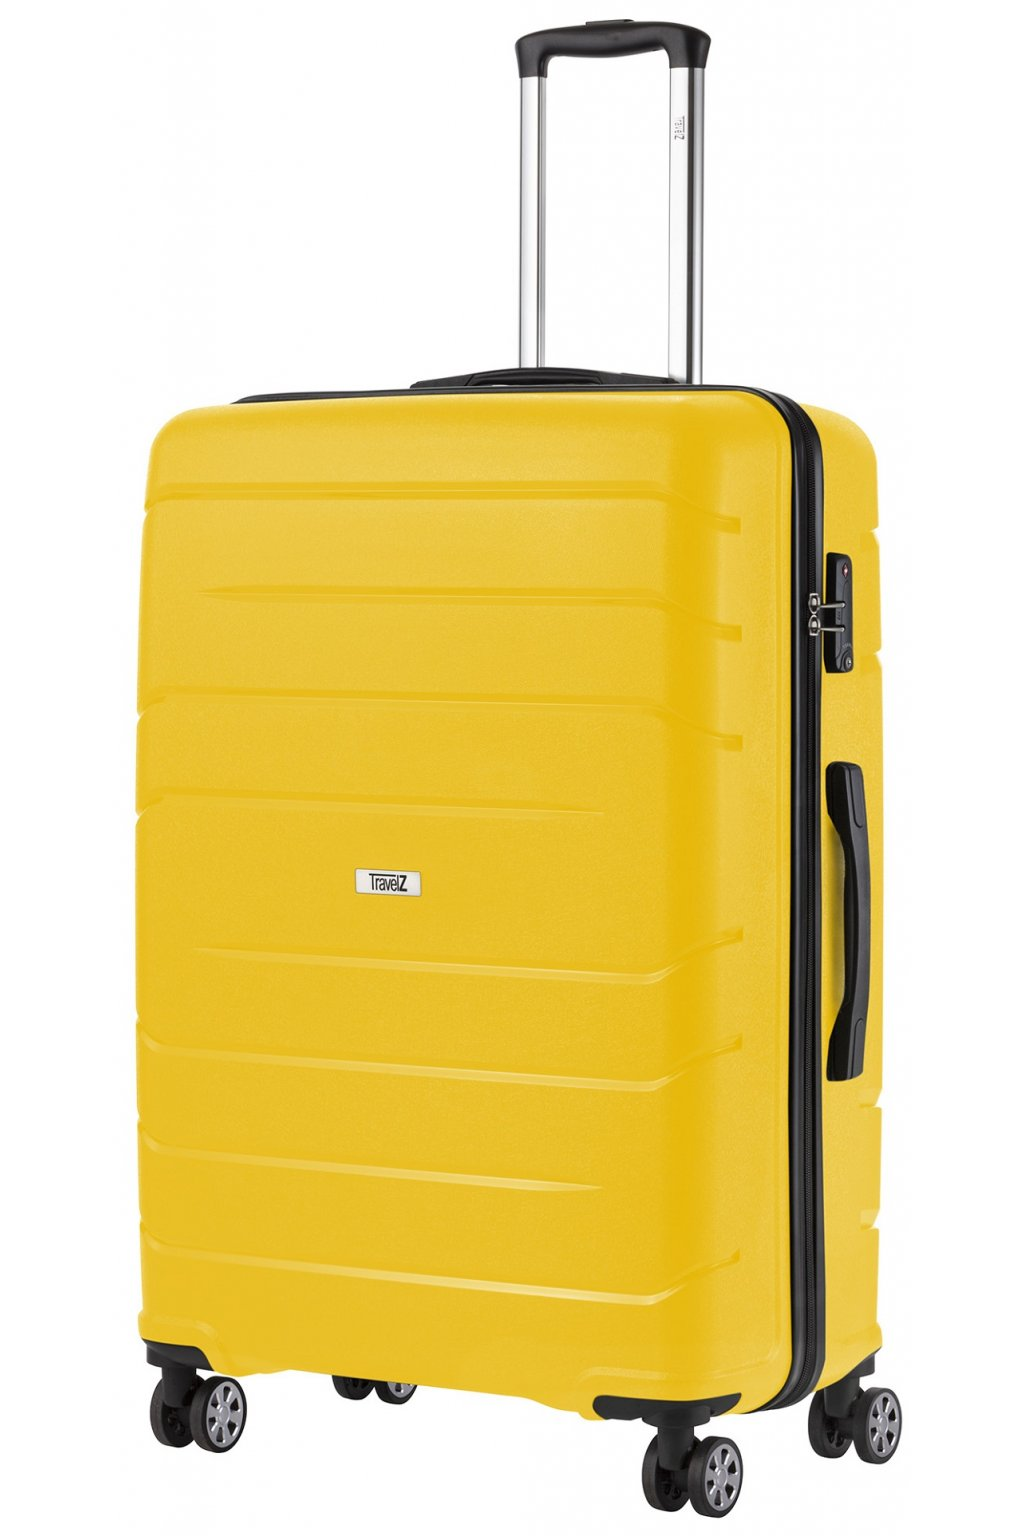 kufrland travelz bigbars yellow (5)